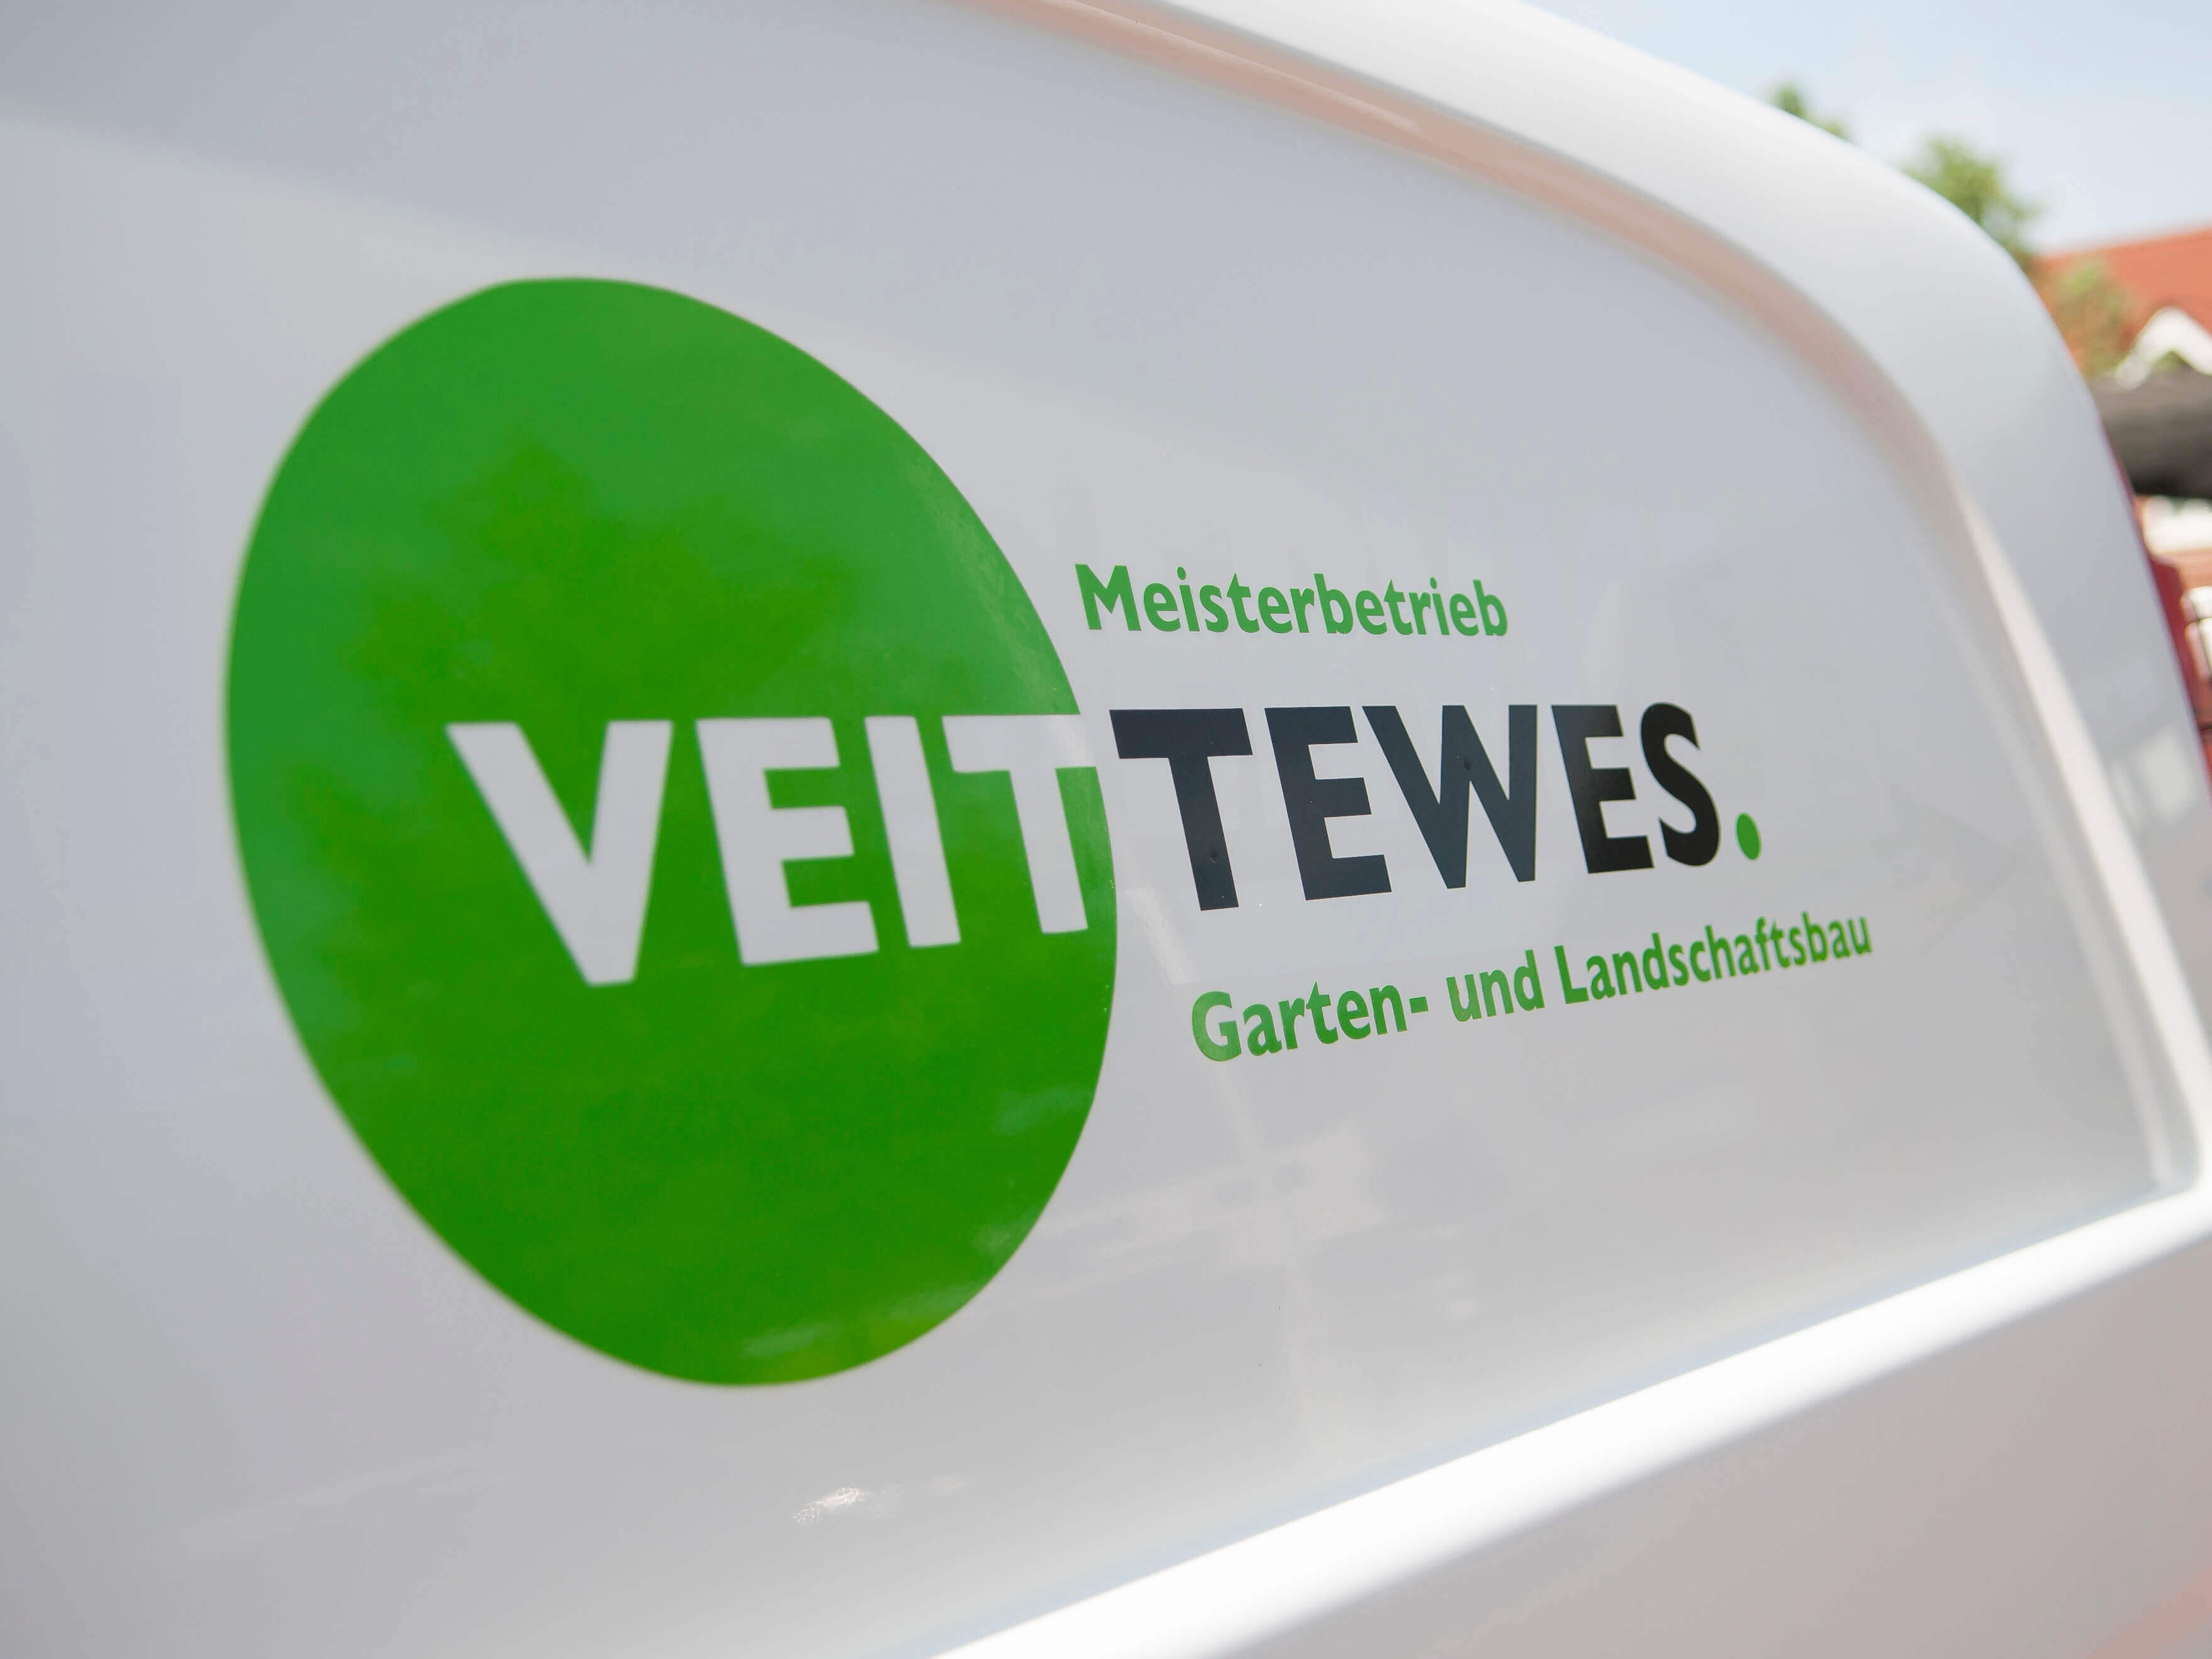 veit-tewes-logo